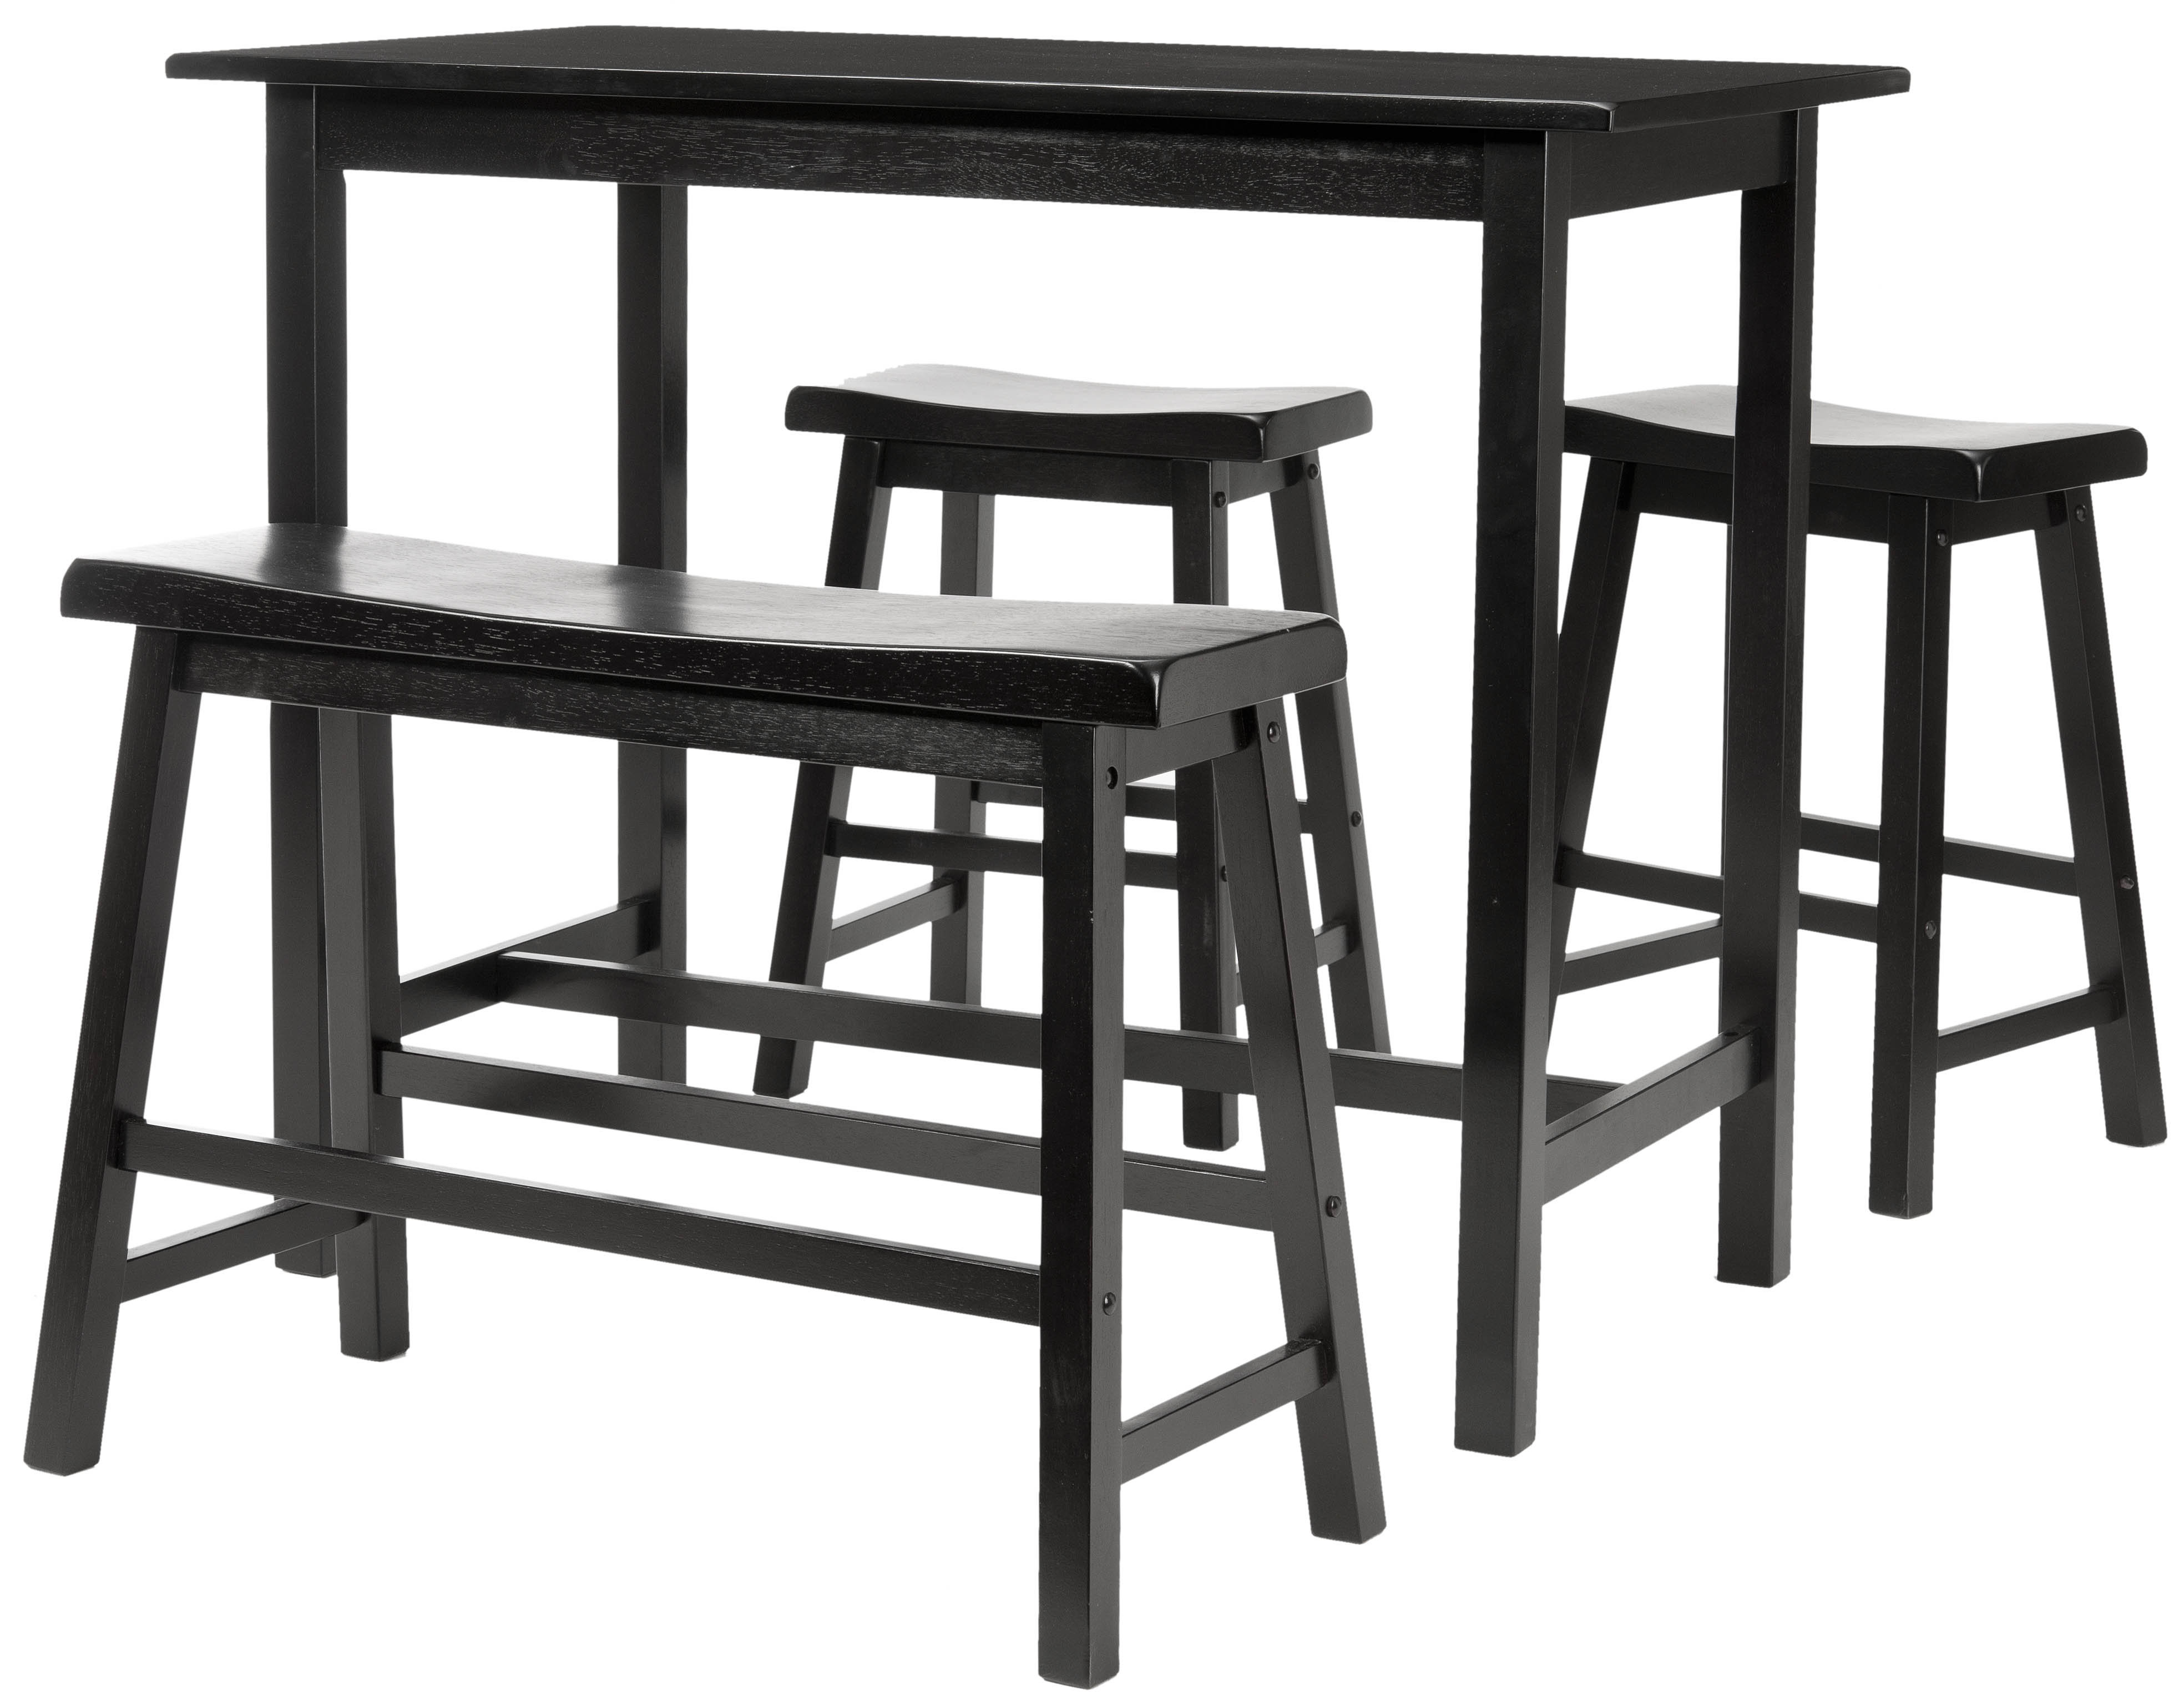 Latest Kerley 4 Piece Dining Sets Regarding Chelsey 4 Piece Dining Set & Reviews (View 4 of 25)